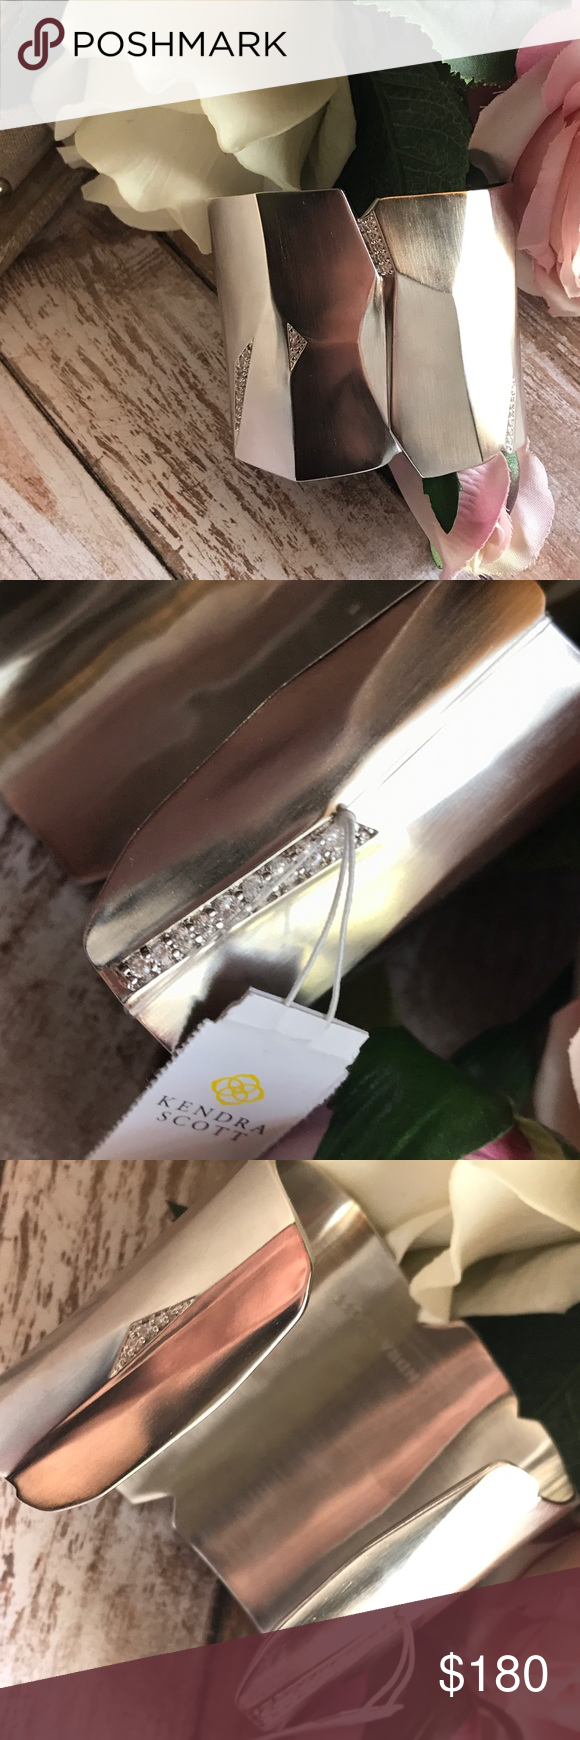 """Stunning! Kendra Scott Constance Cuff in Silver Absolutely stunning silver """"Constance"""" cuff from Kendra Scott is an artisanal work of art. Made from hand-faceted Rhodium silver with crystal pave accents. Comes with jewelry bag and care instructions. NWT Kendra Scott Jewelry Bracelets"""